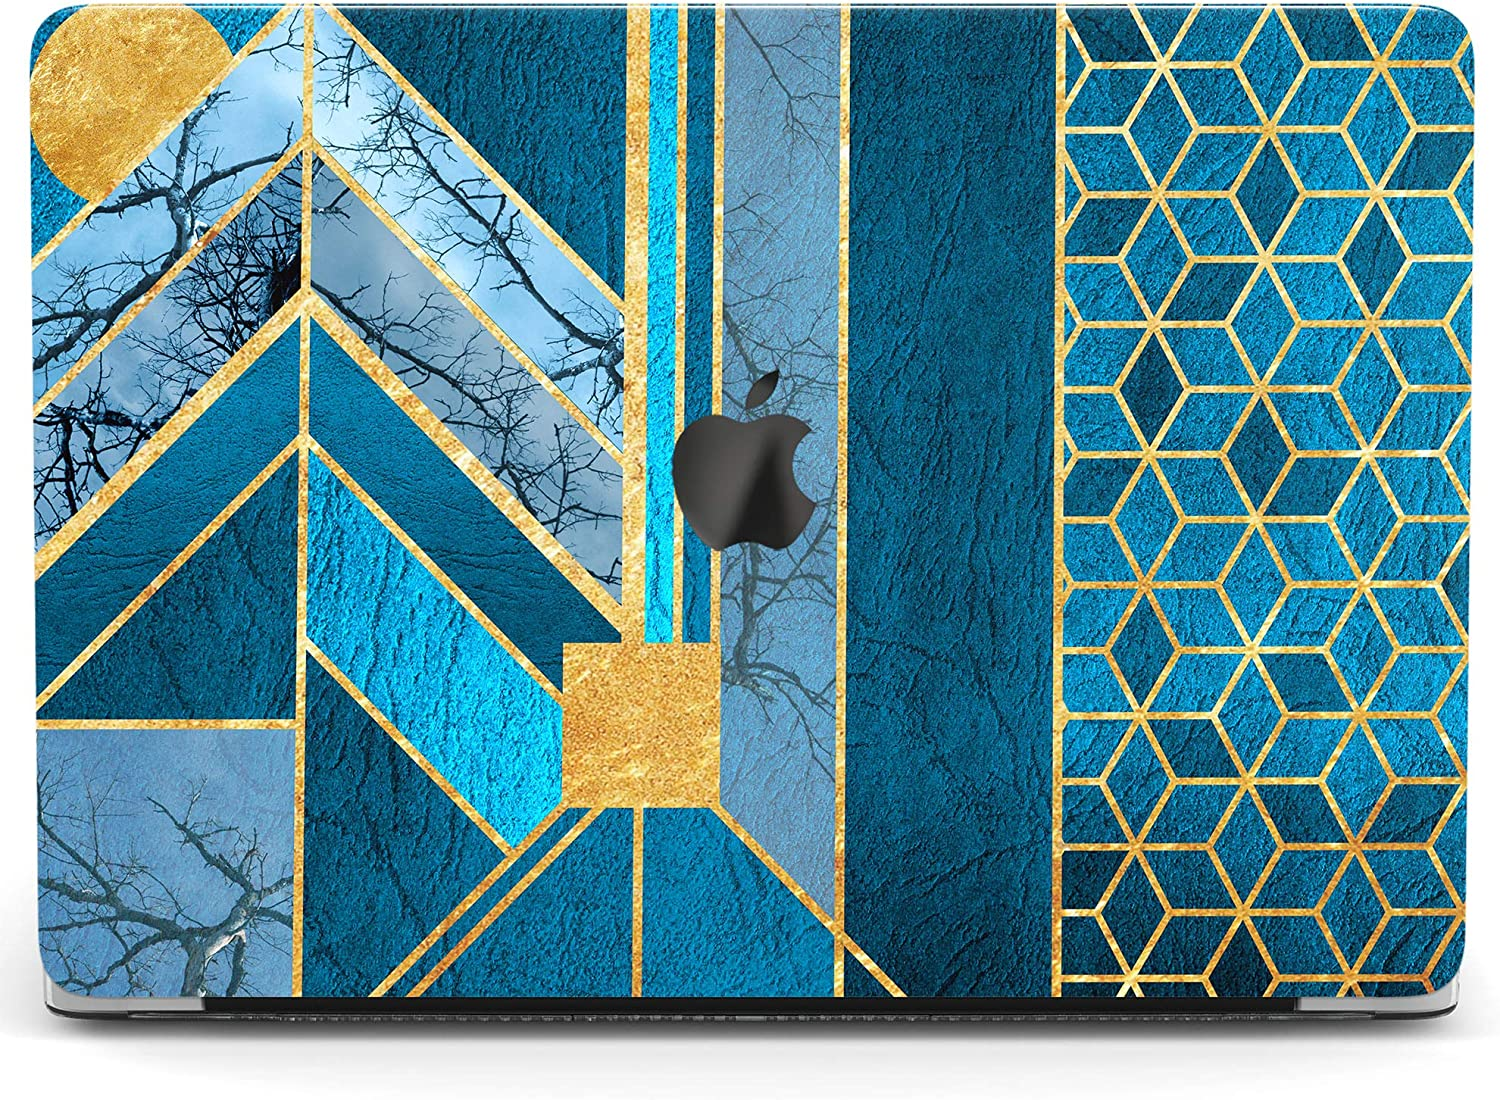 Wonder Wild Case Compatible with MacBook Air 13 inch Pro 15 2019 2018 Retina 12 11 Apple Hard Mac Protective Cover 2017 16 2020 Plastic Laptop Print Blue Geometry Tree Abstract Texture Art Mosaic